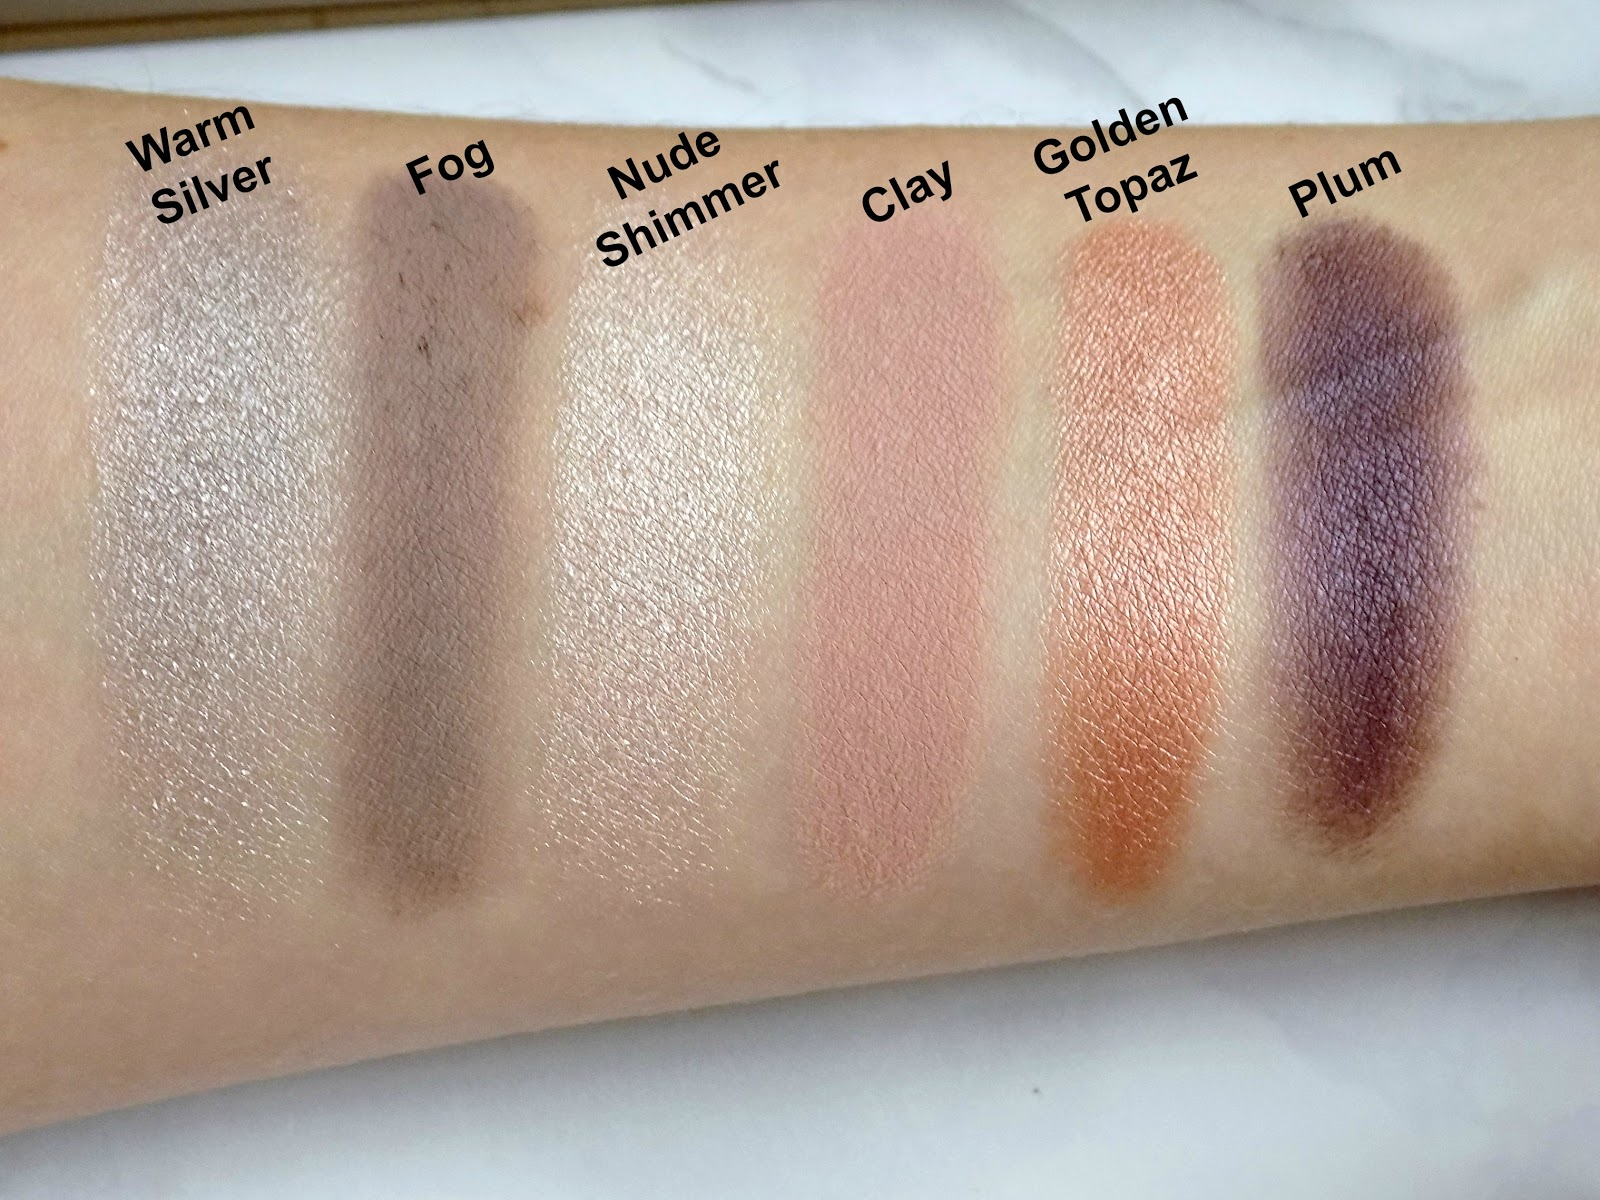 Stila 'Trust in Love' set swatches